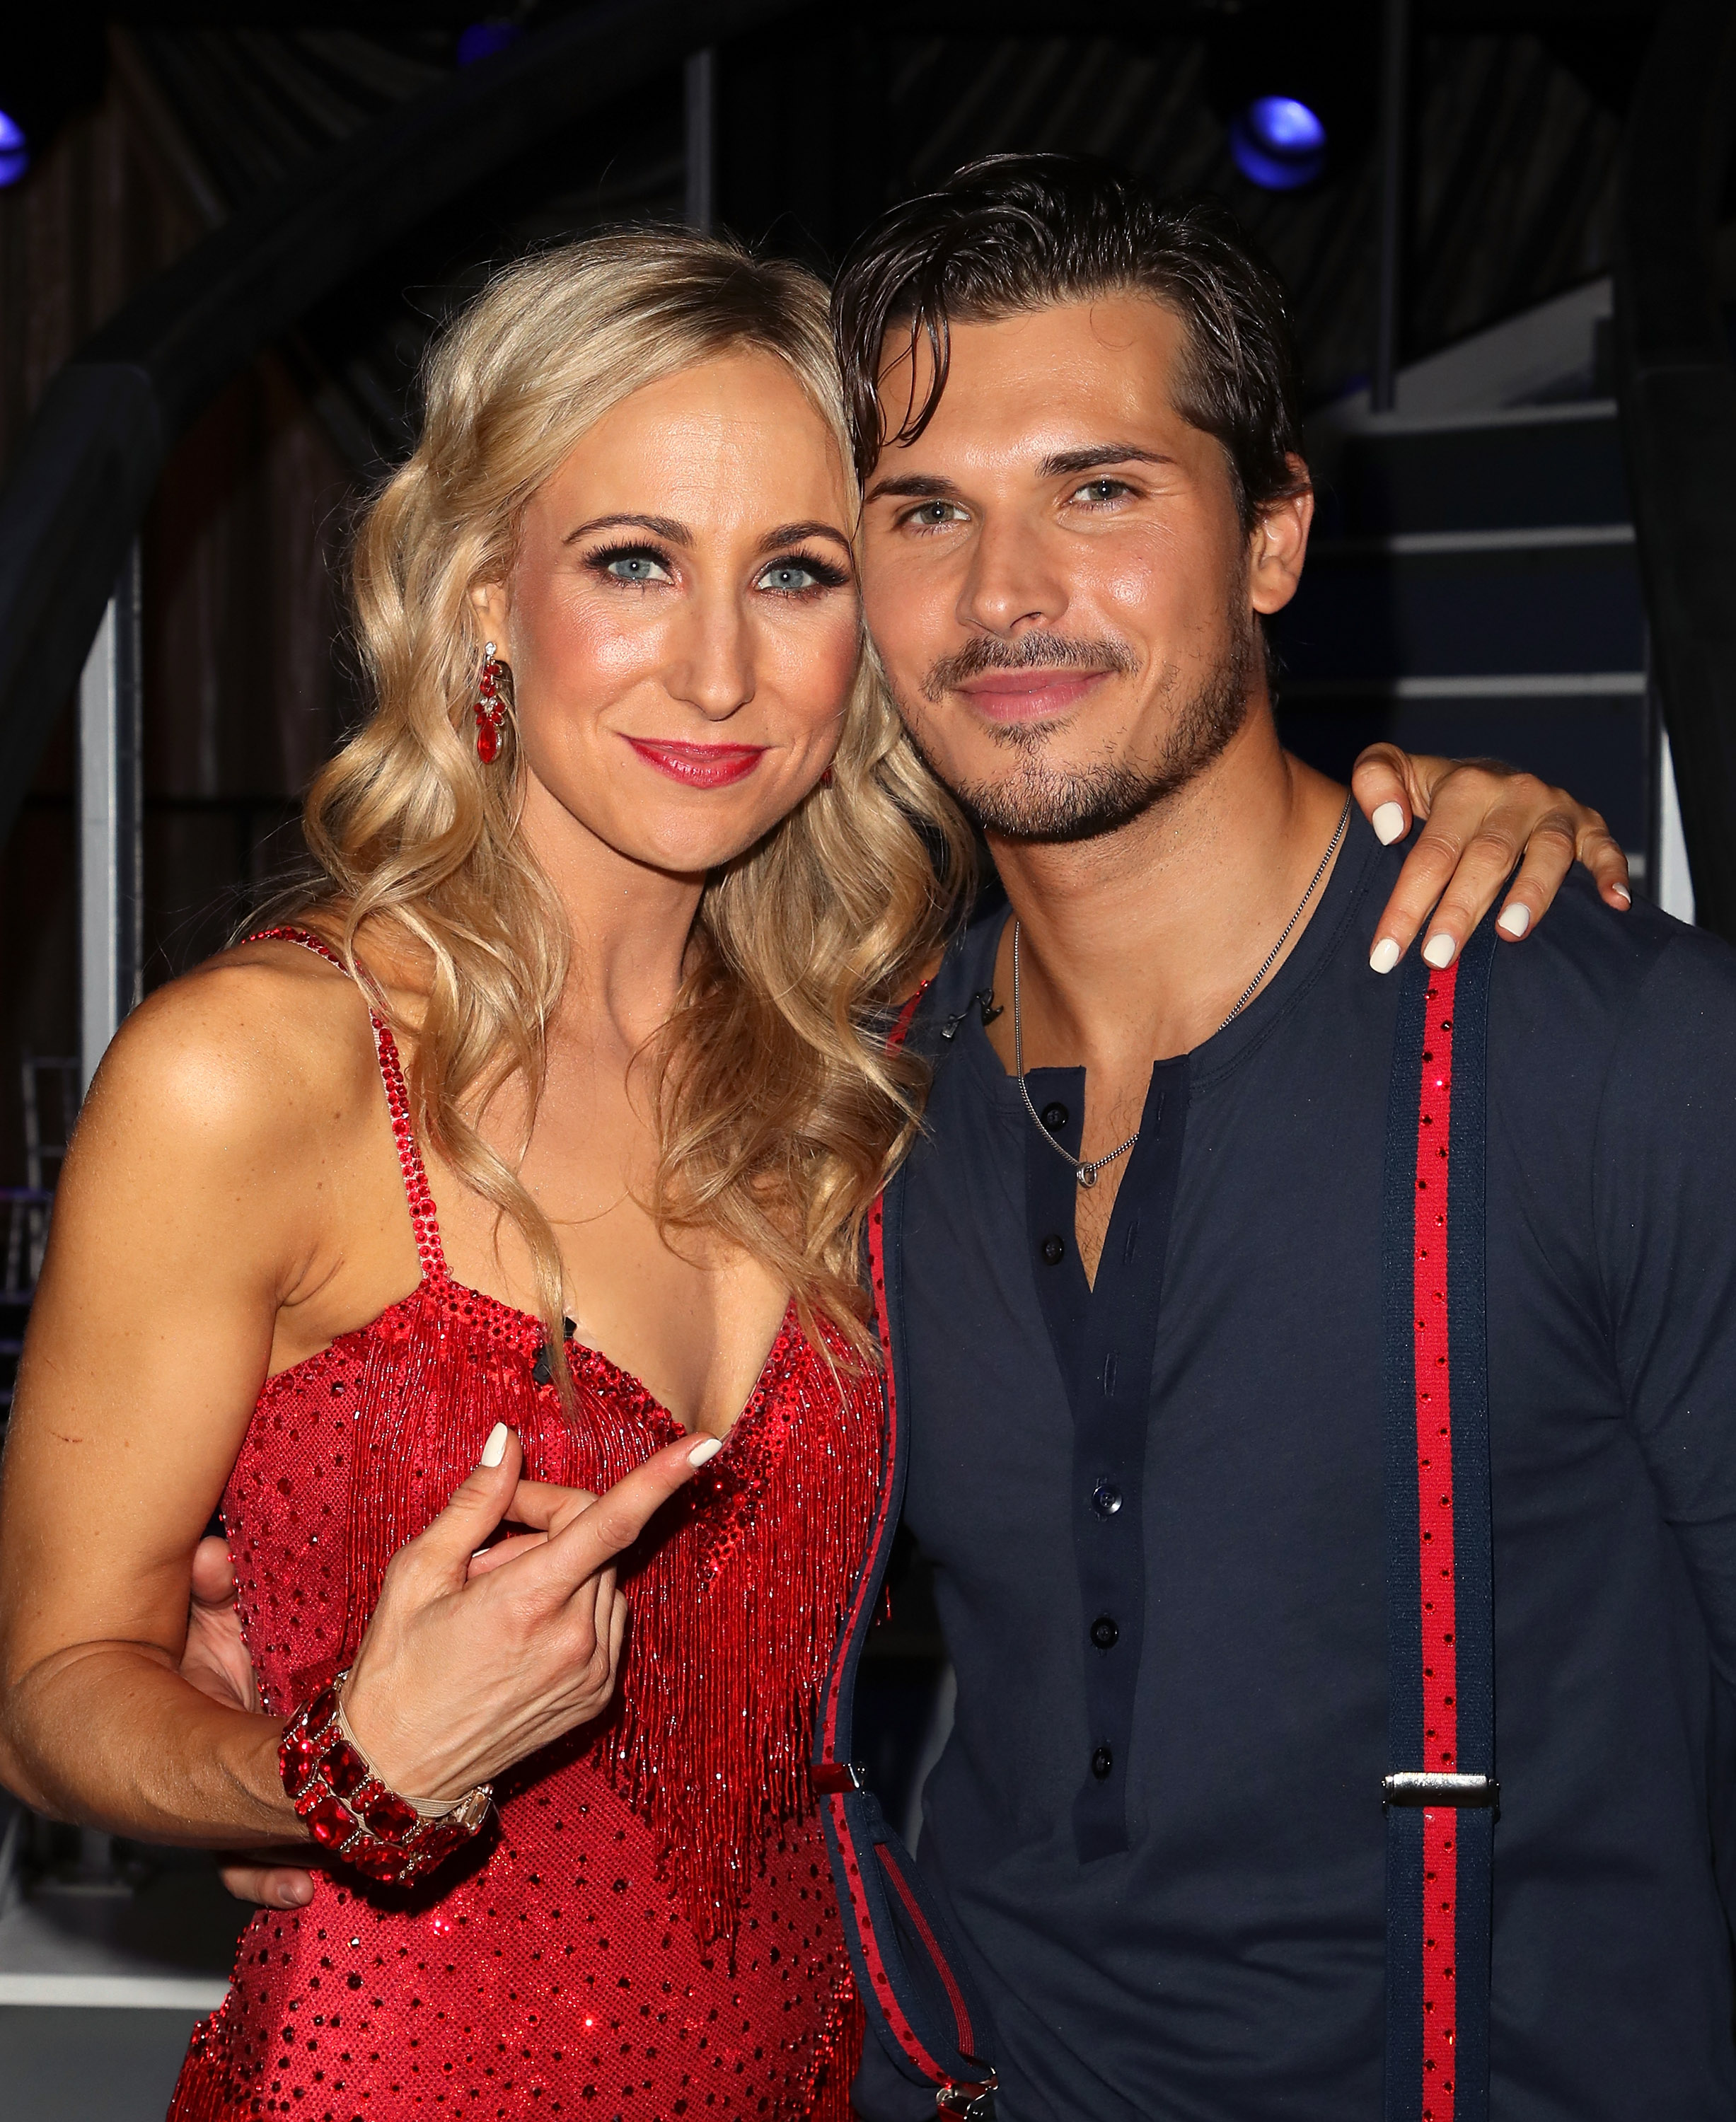 Nikki Glaser (L) and Gleb Savchenko pose at 'Dancing with the Stars' Season 27 at CBS Televison City on September 24, 2018 in Los Angeles, California.